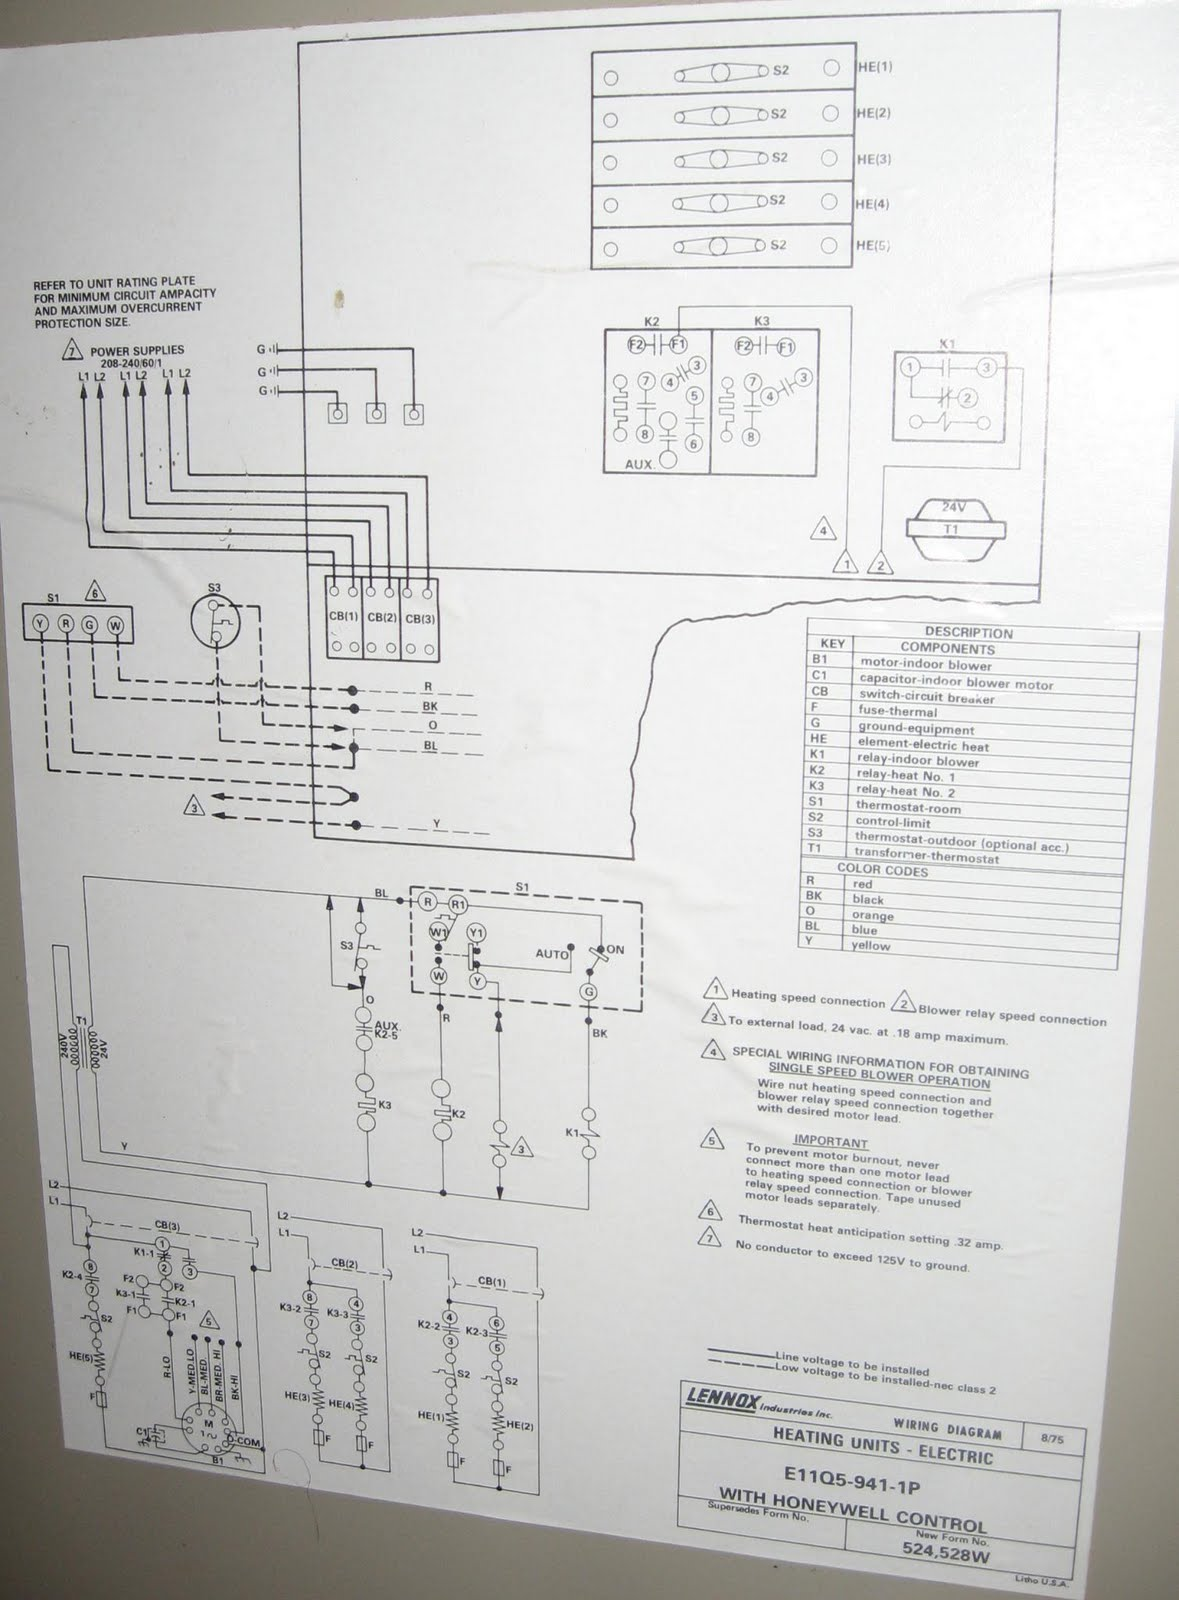 Mobile Home Furnace Wiring Diagram Subaru Diagrams Electric Heat Sequencer For